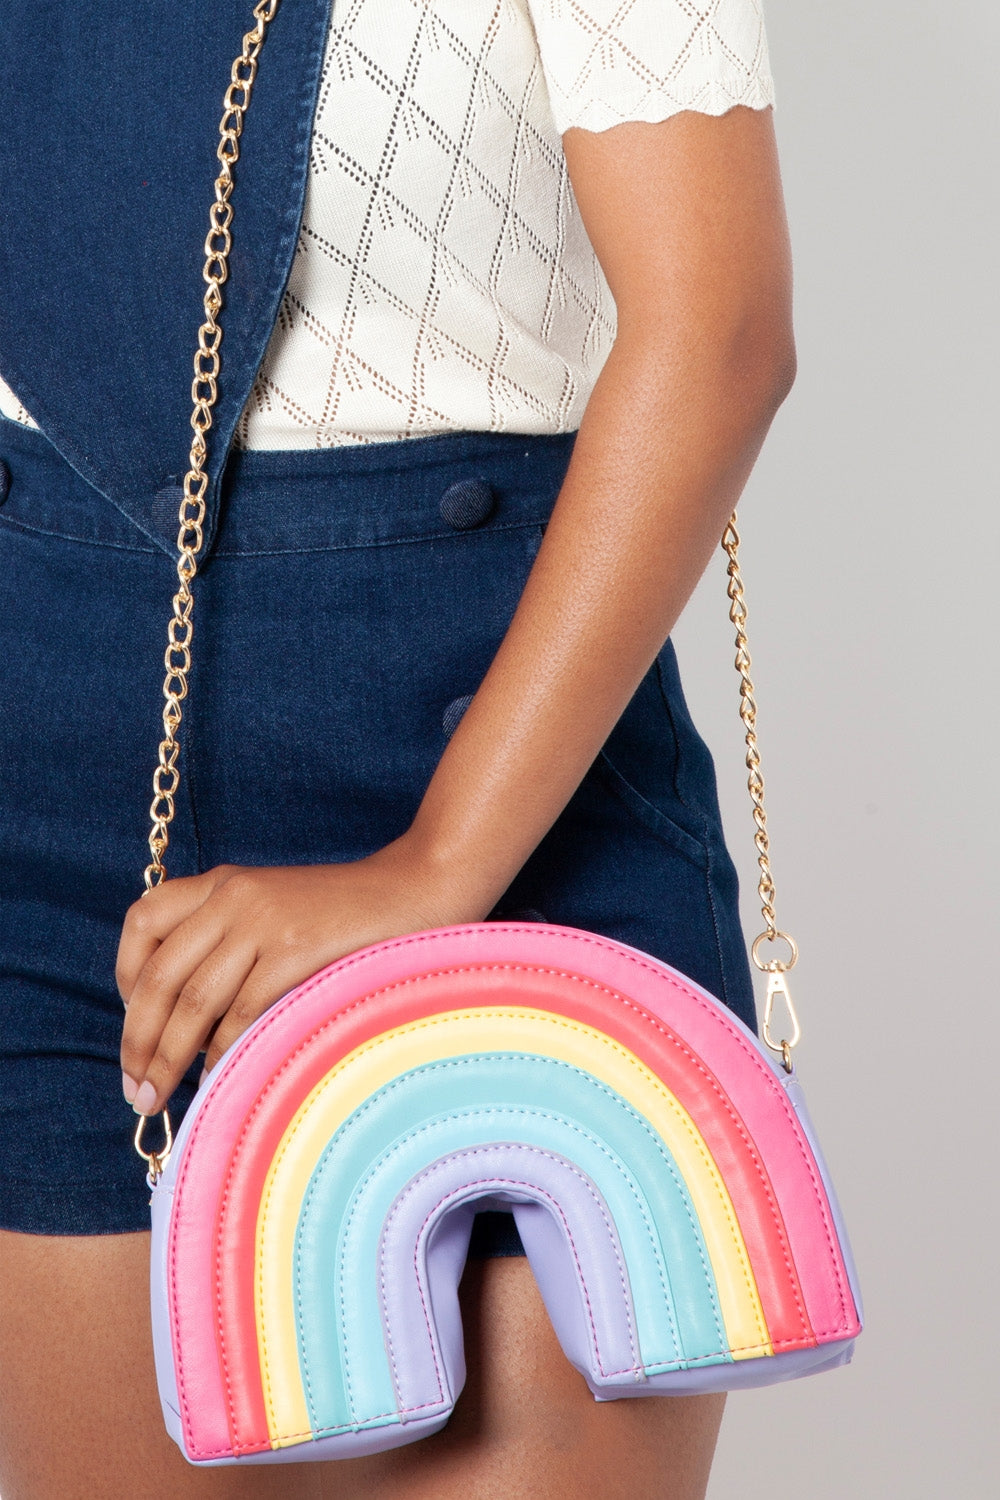 Voodoo Vixen Over the Rainbow Bag